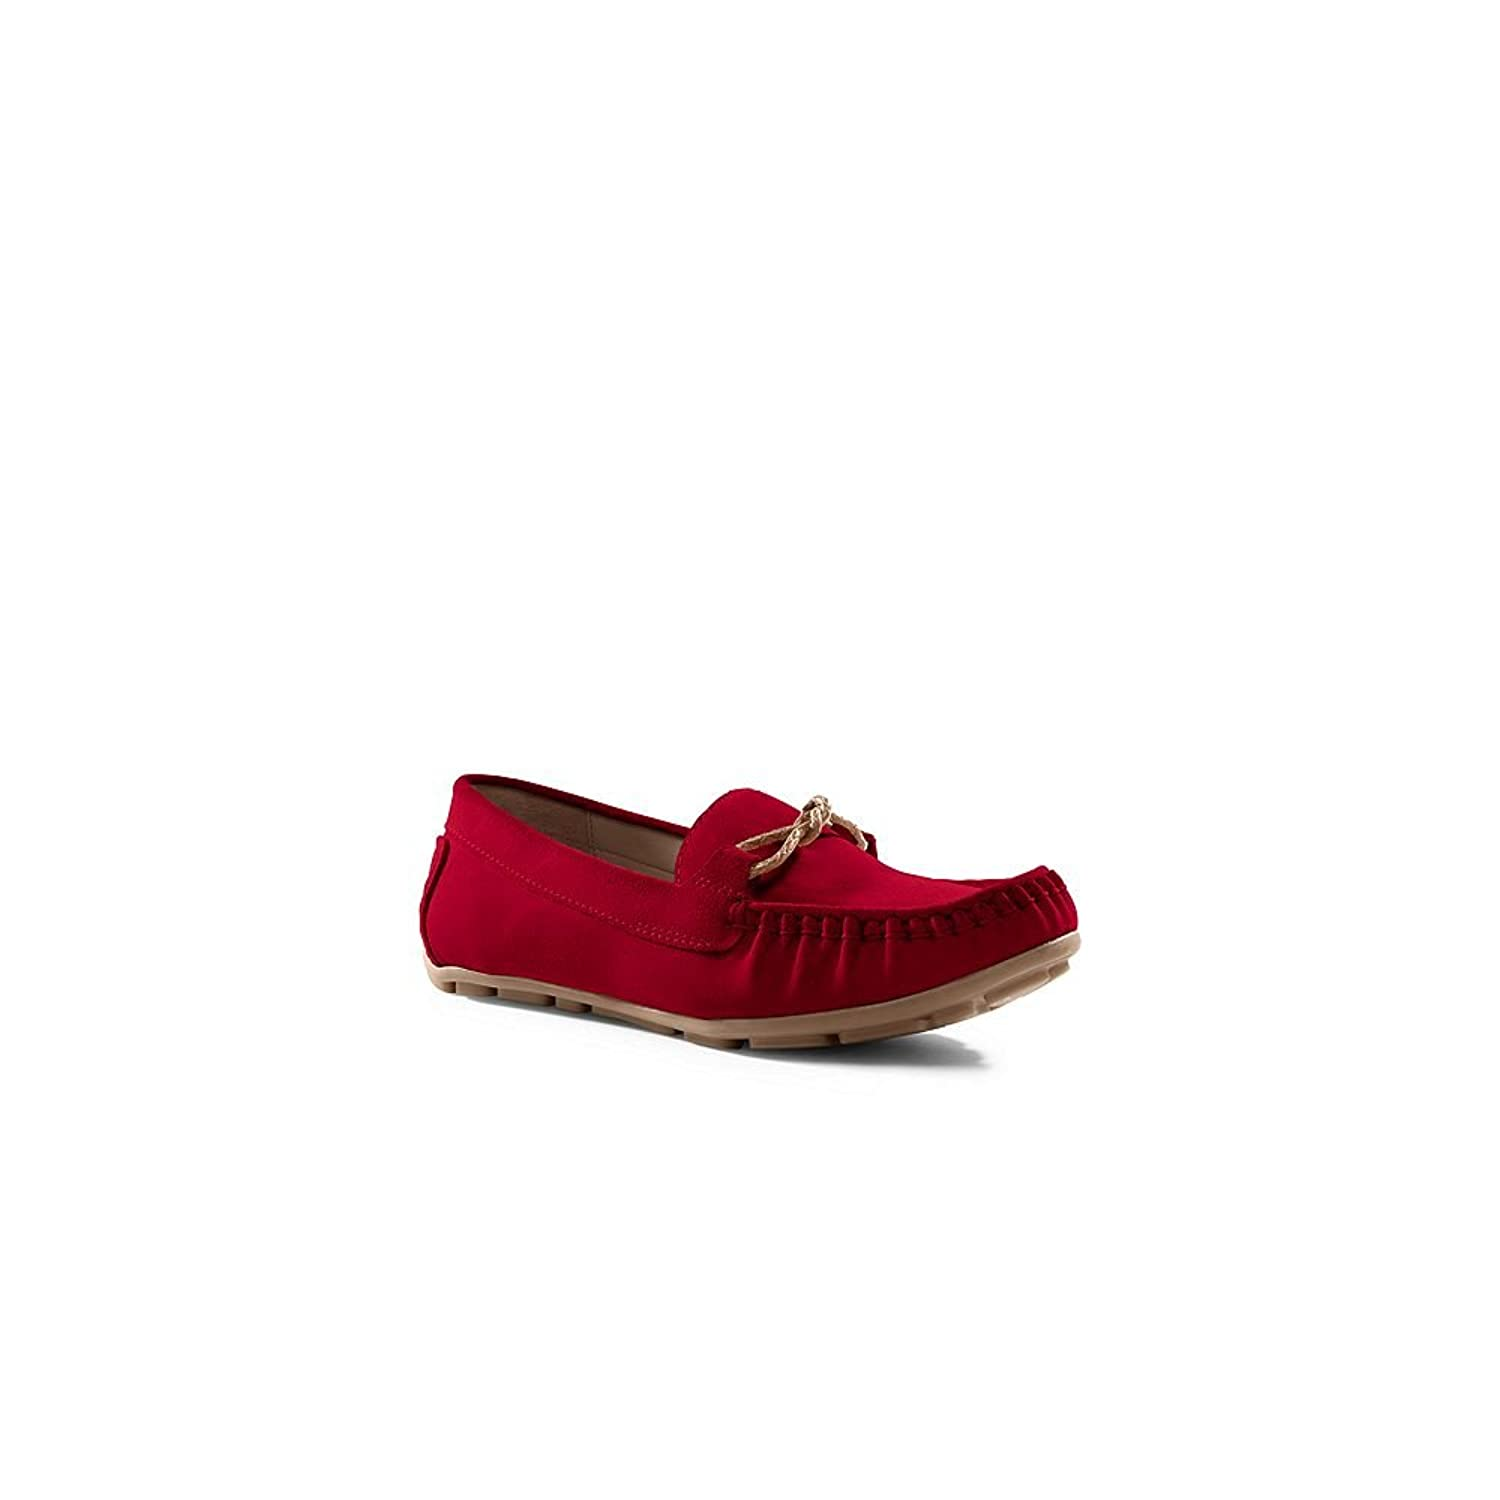 Lands' End Canvas Women's Driving Moccasins, 10, Chili Red